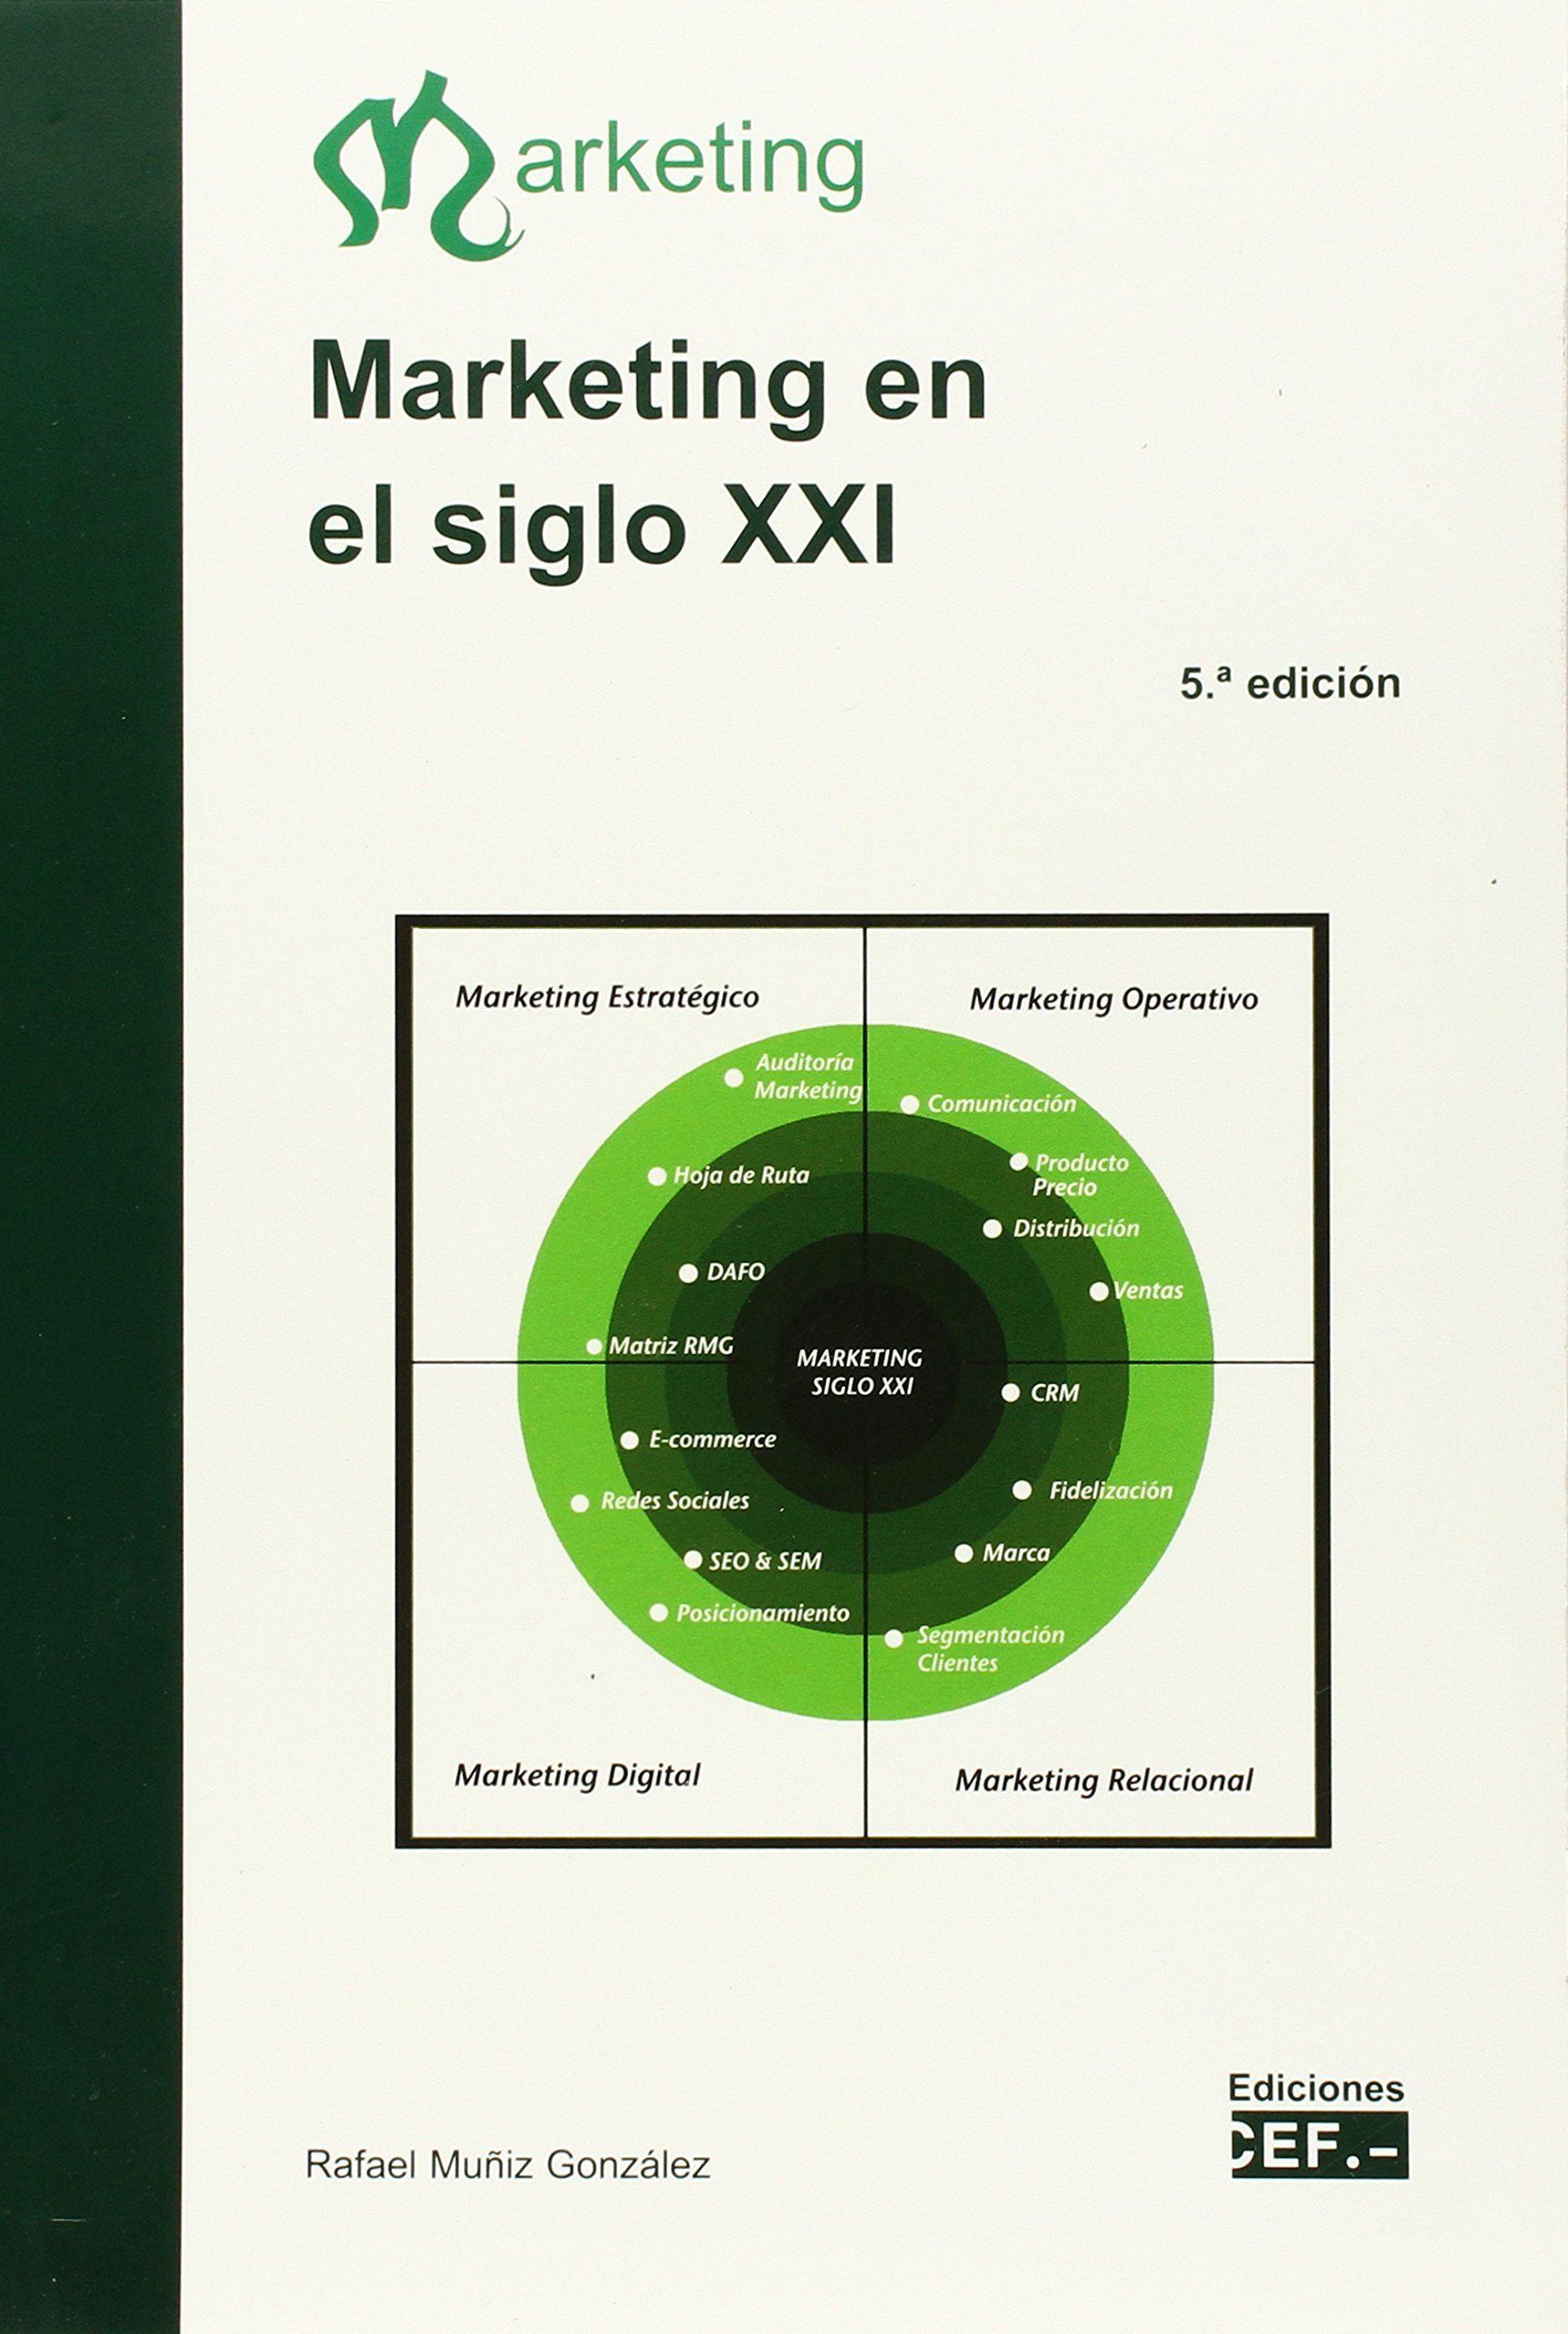 MARKETING EN EL SIGLO XXI EBOOK DOWNLOAD